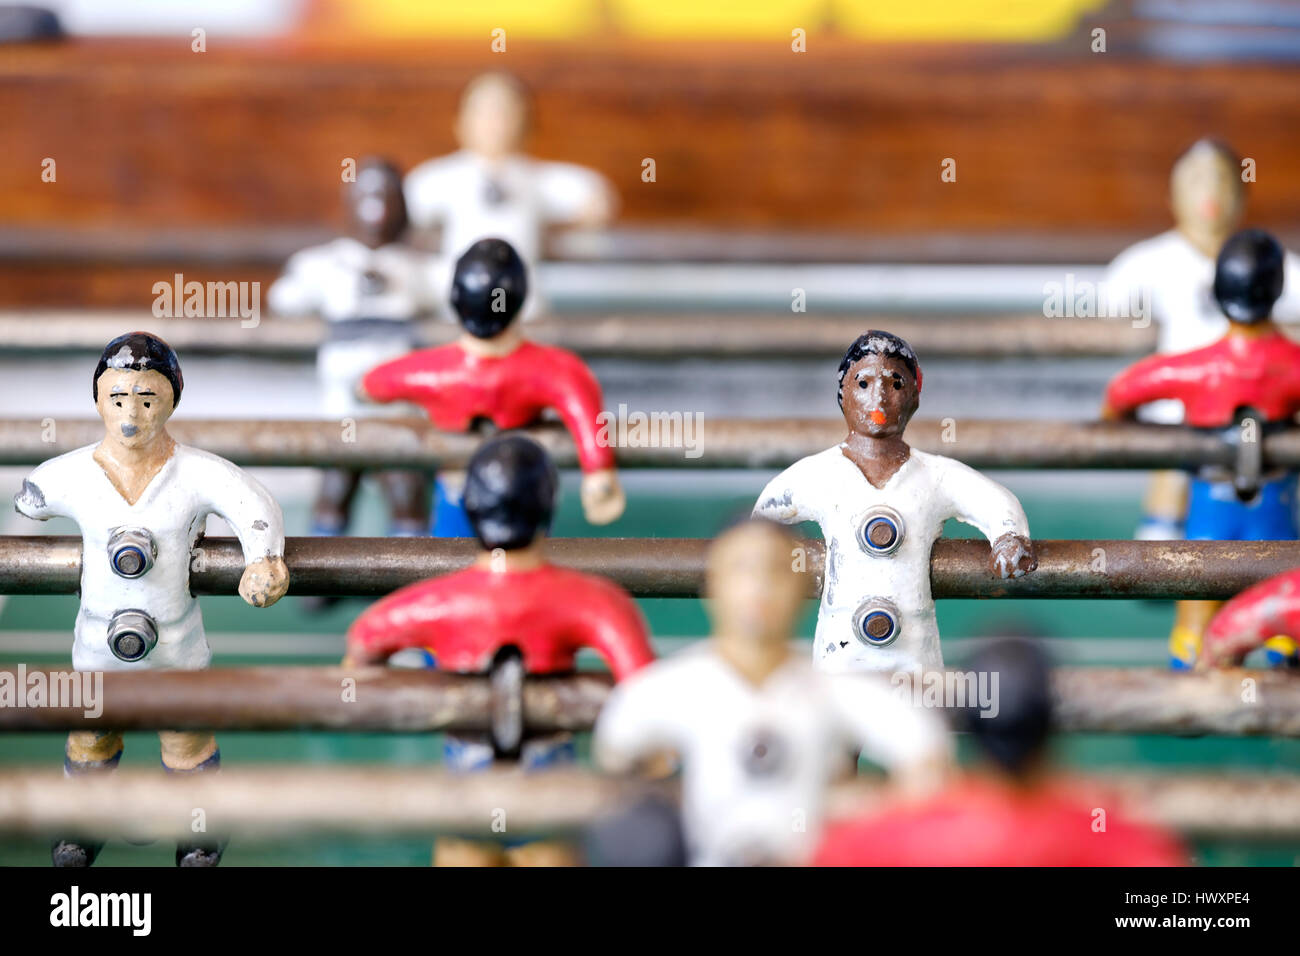 An old fussball, foosball or table football game which has painted shite and black players in red and white football - Stock Image